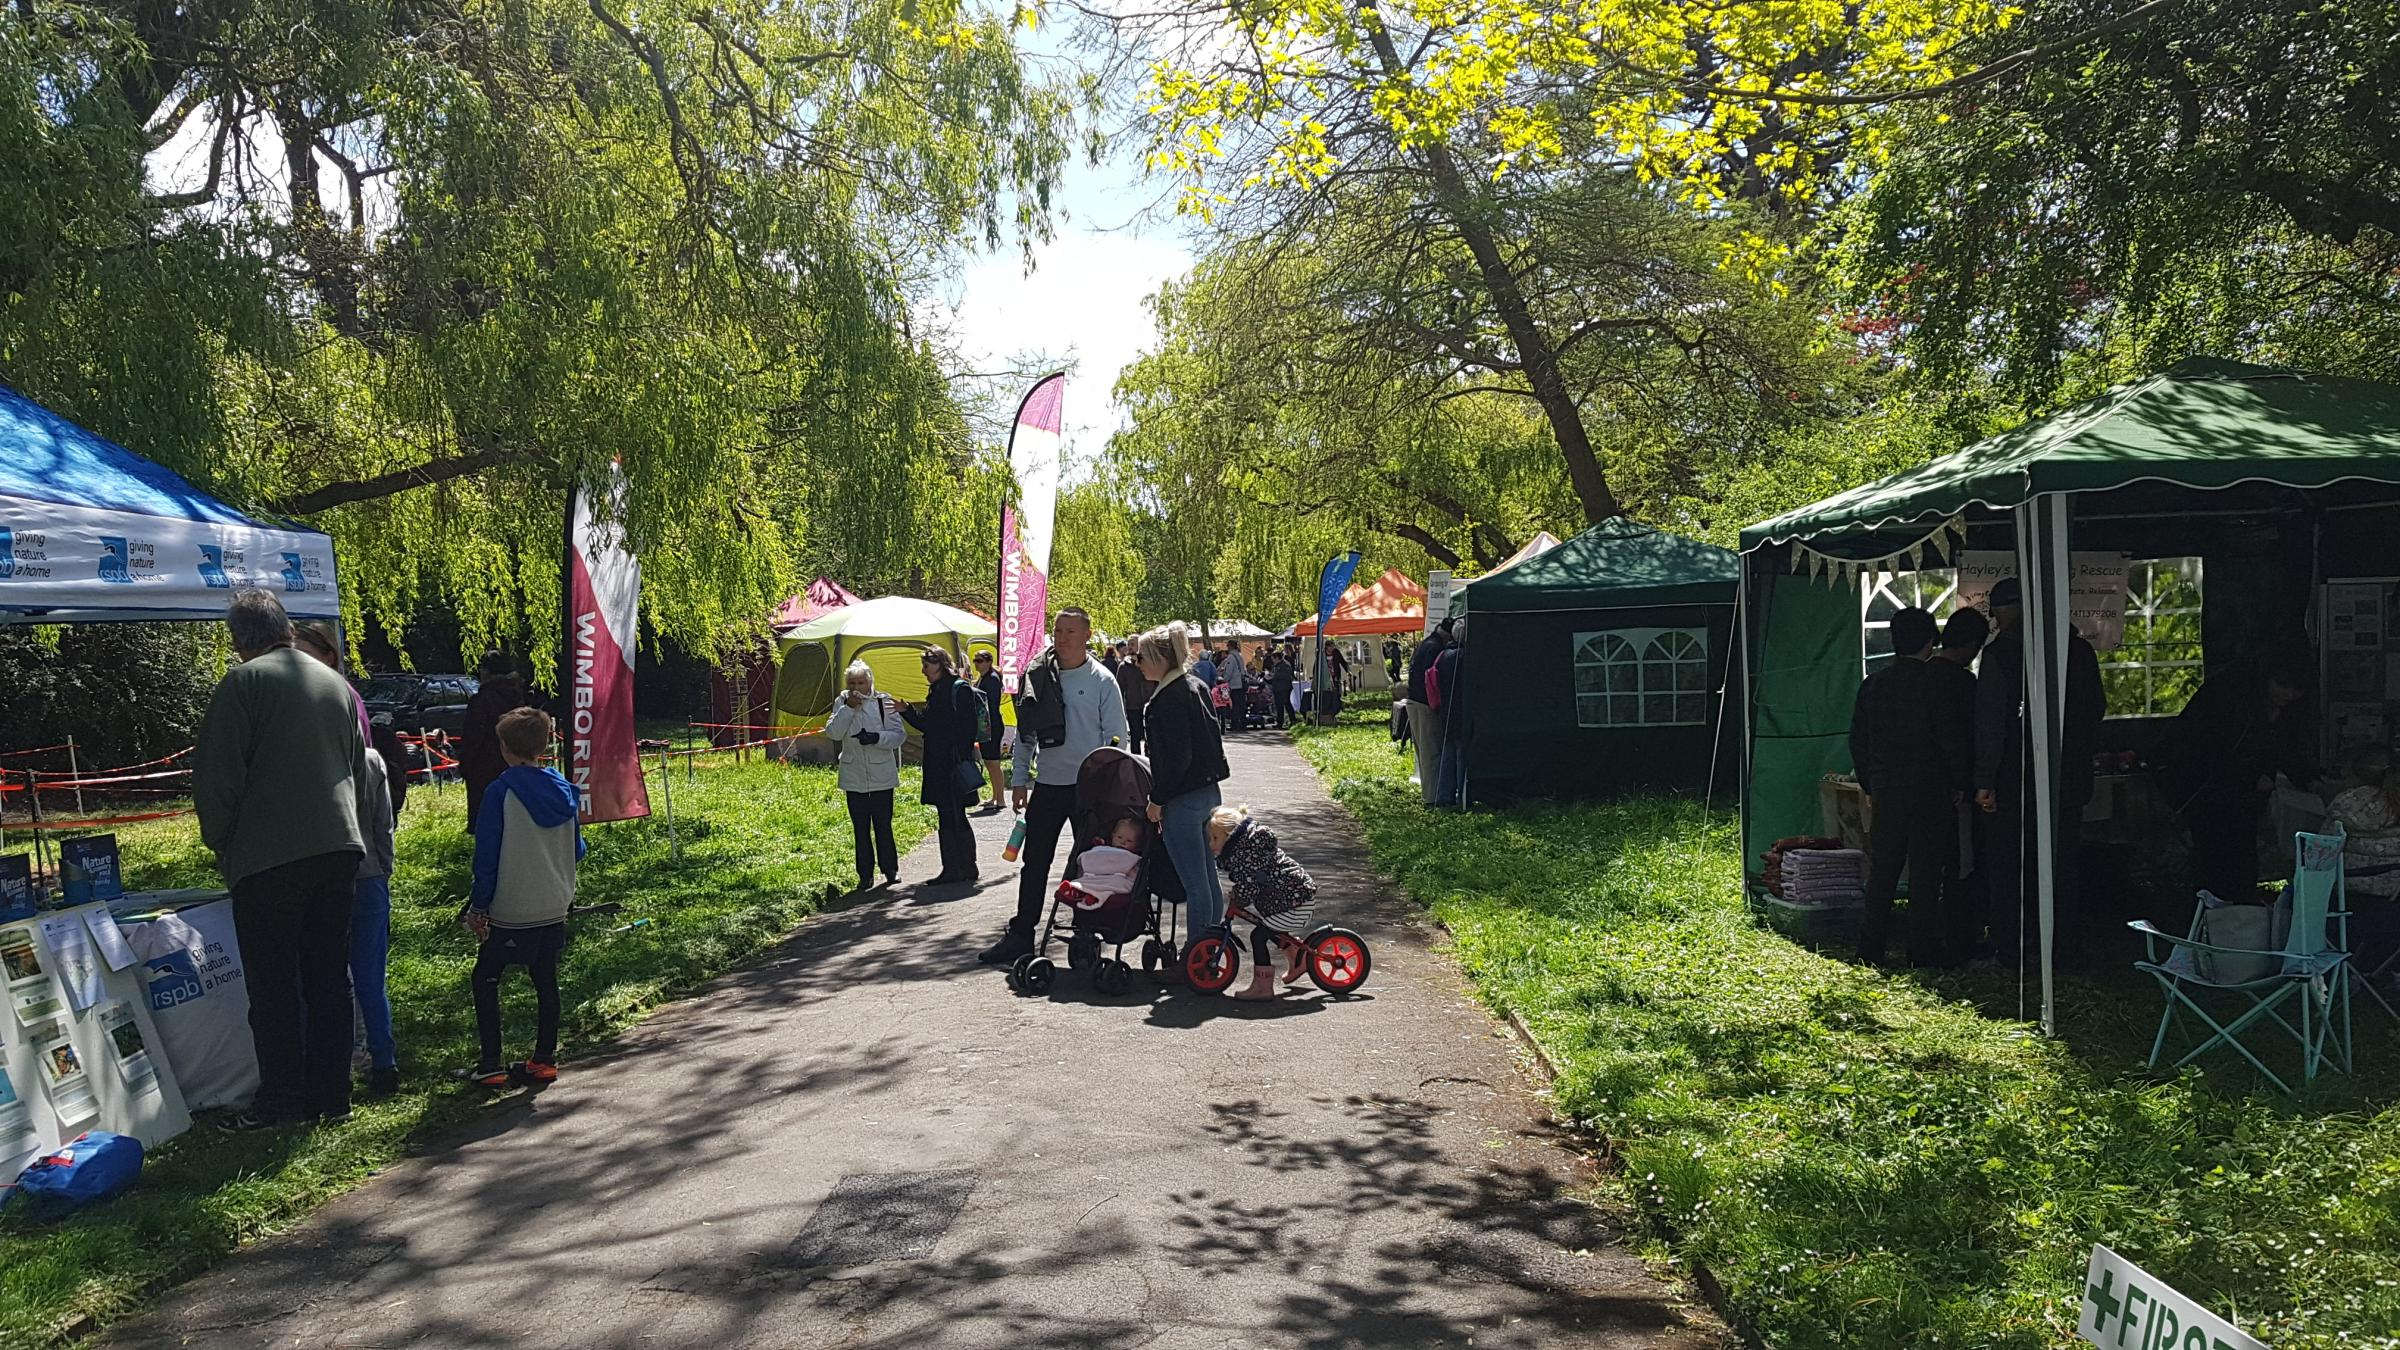 Visitors enjoy the great outdoors for Picnic in the Park, Radipole Gardens